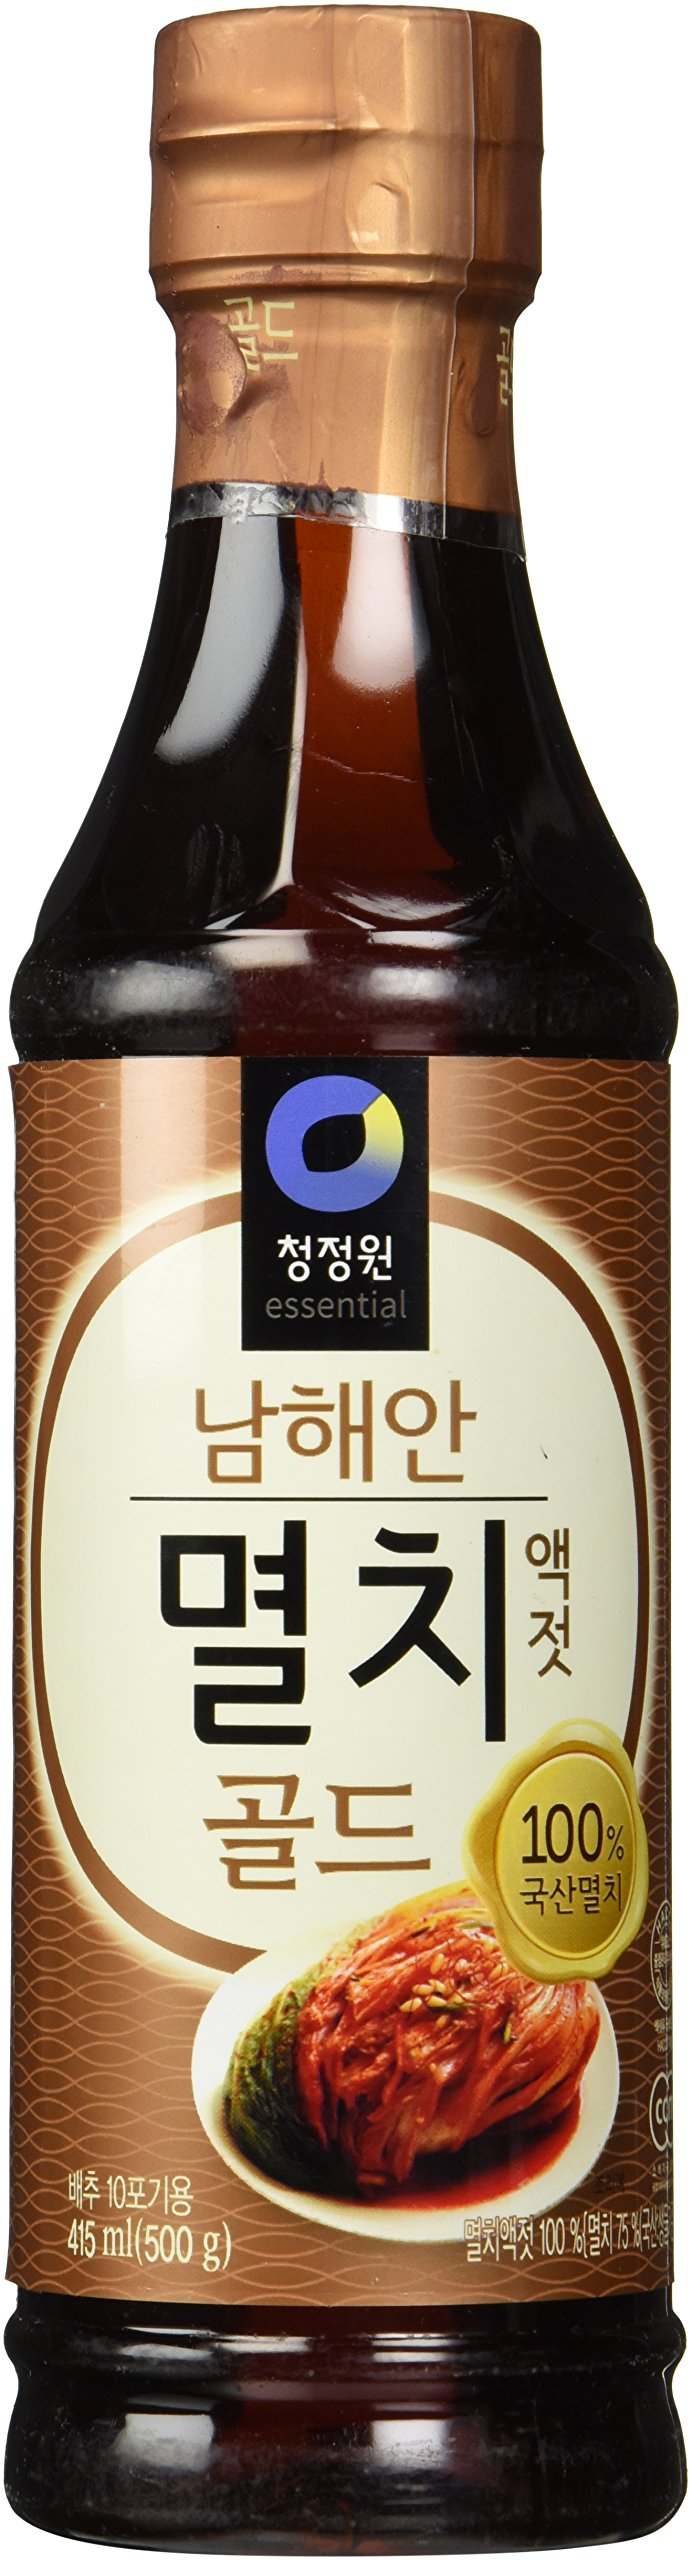 Premium Anchovy Fish Sauce Gold (Small 1.1 lb) By Chung-jung-one